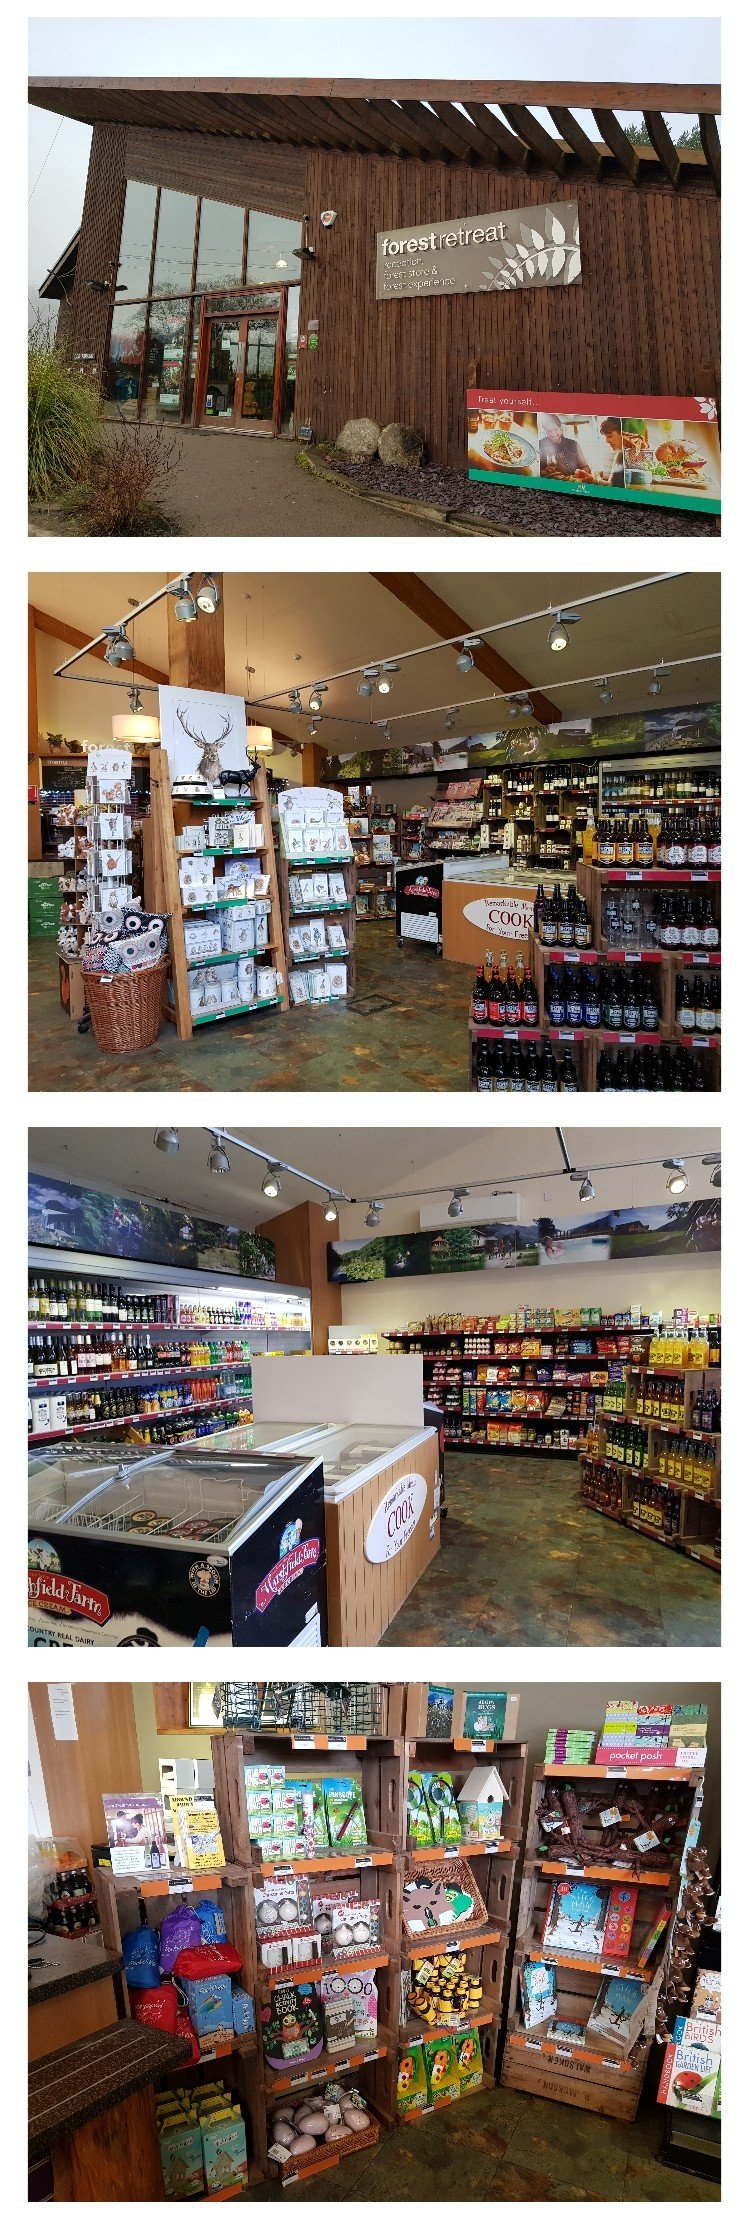 Forest Retreat photo strip showing selection in store.